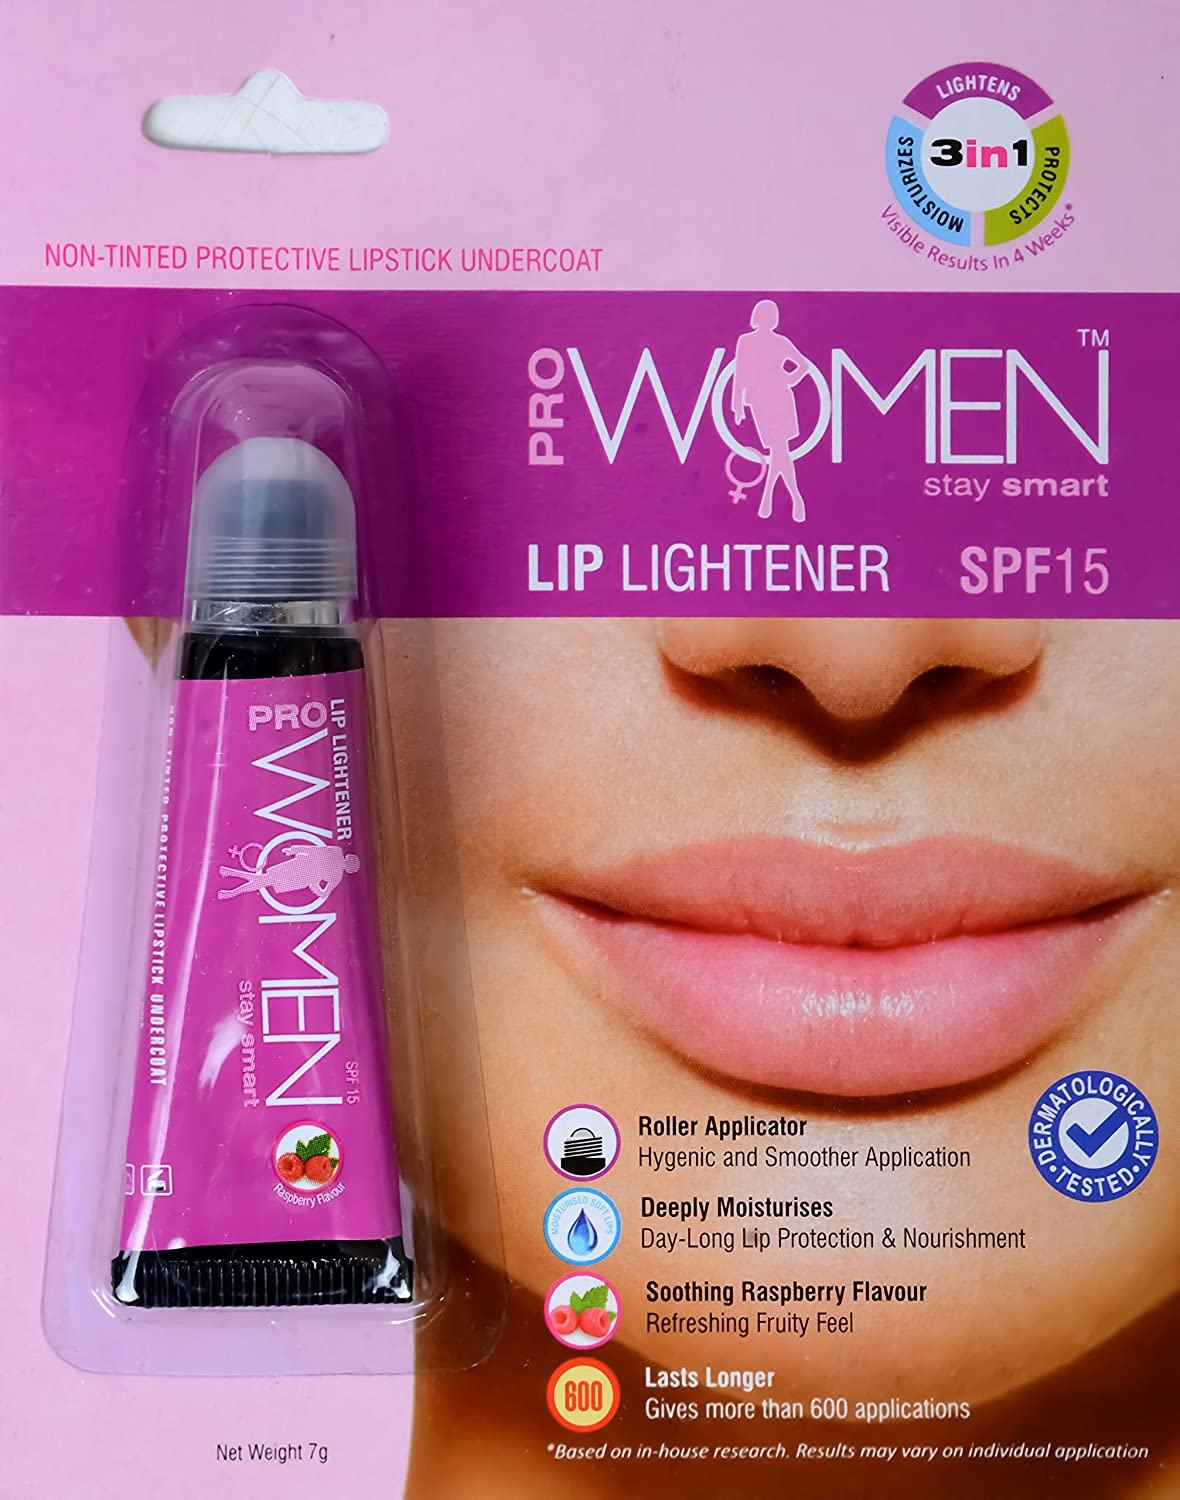 Prowomen Lip Lightner And Nontinted Lipstick Undercoat